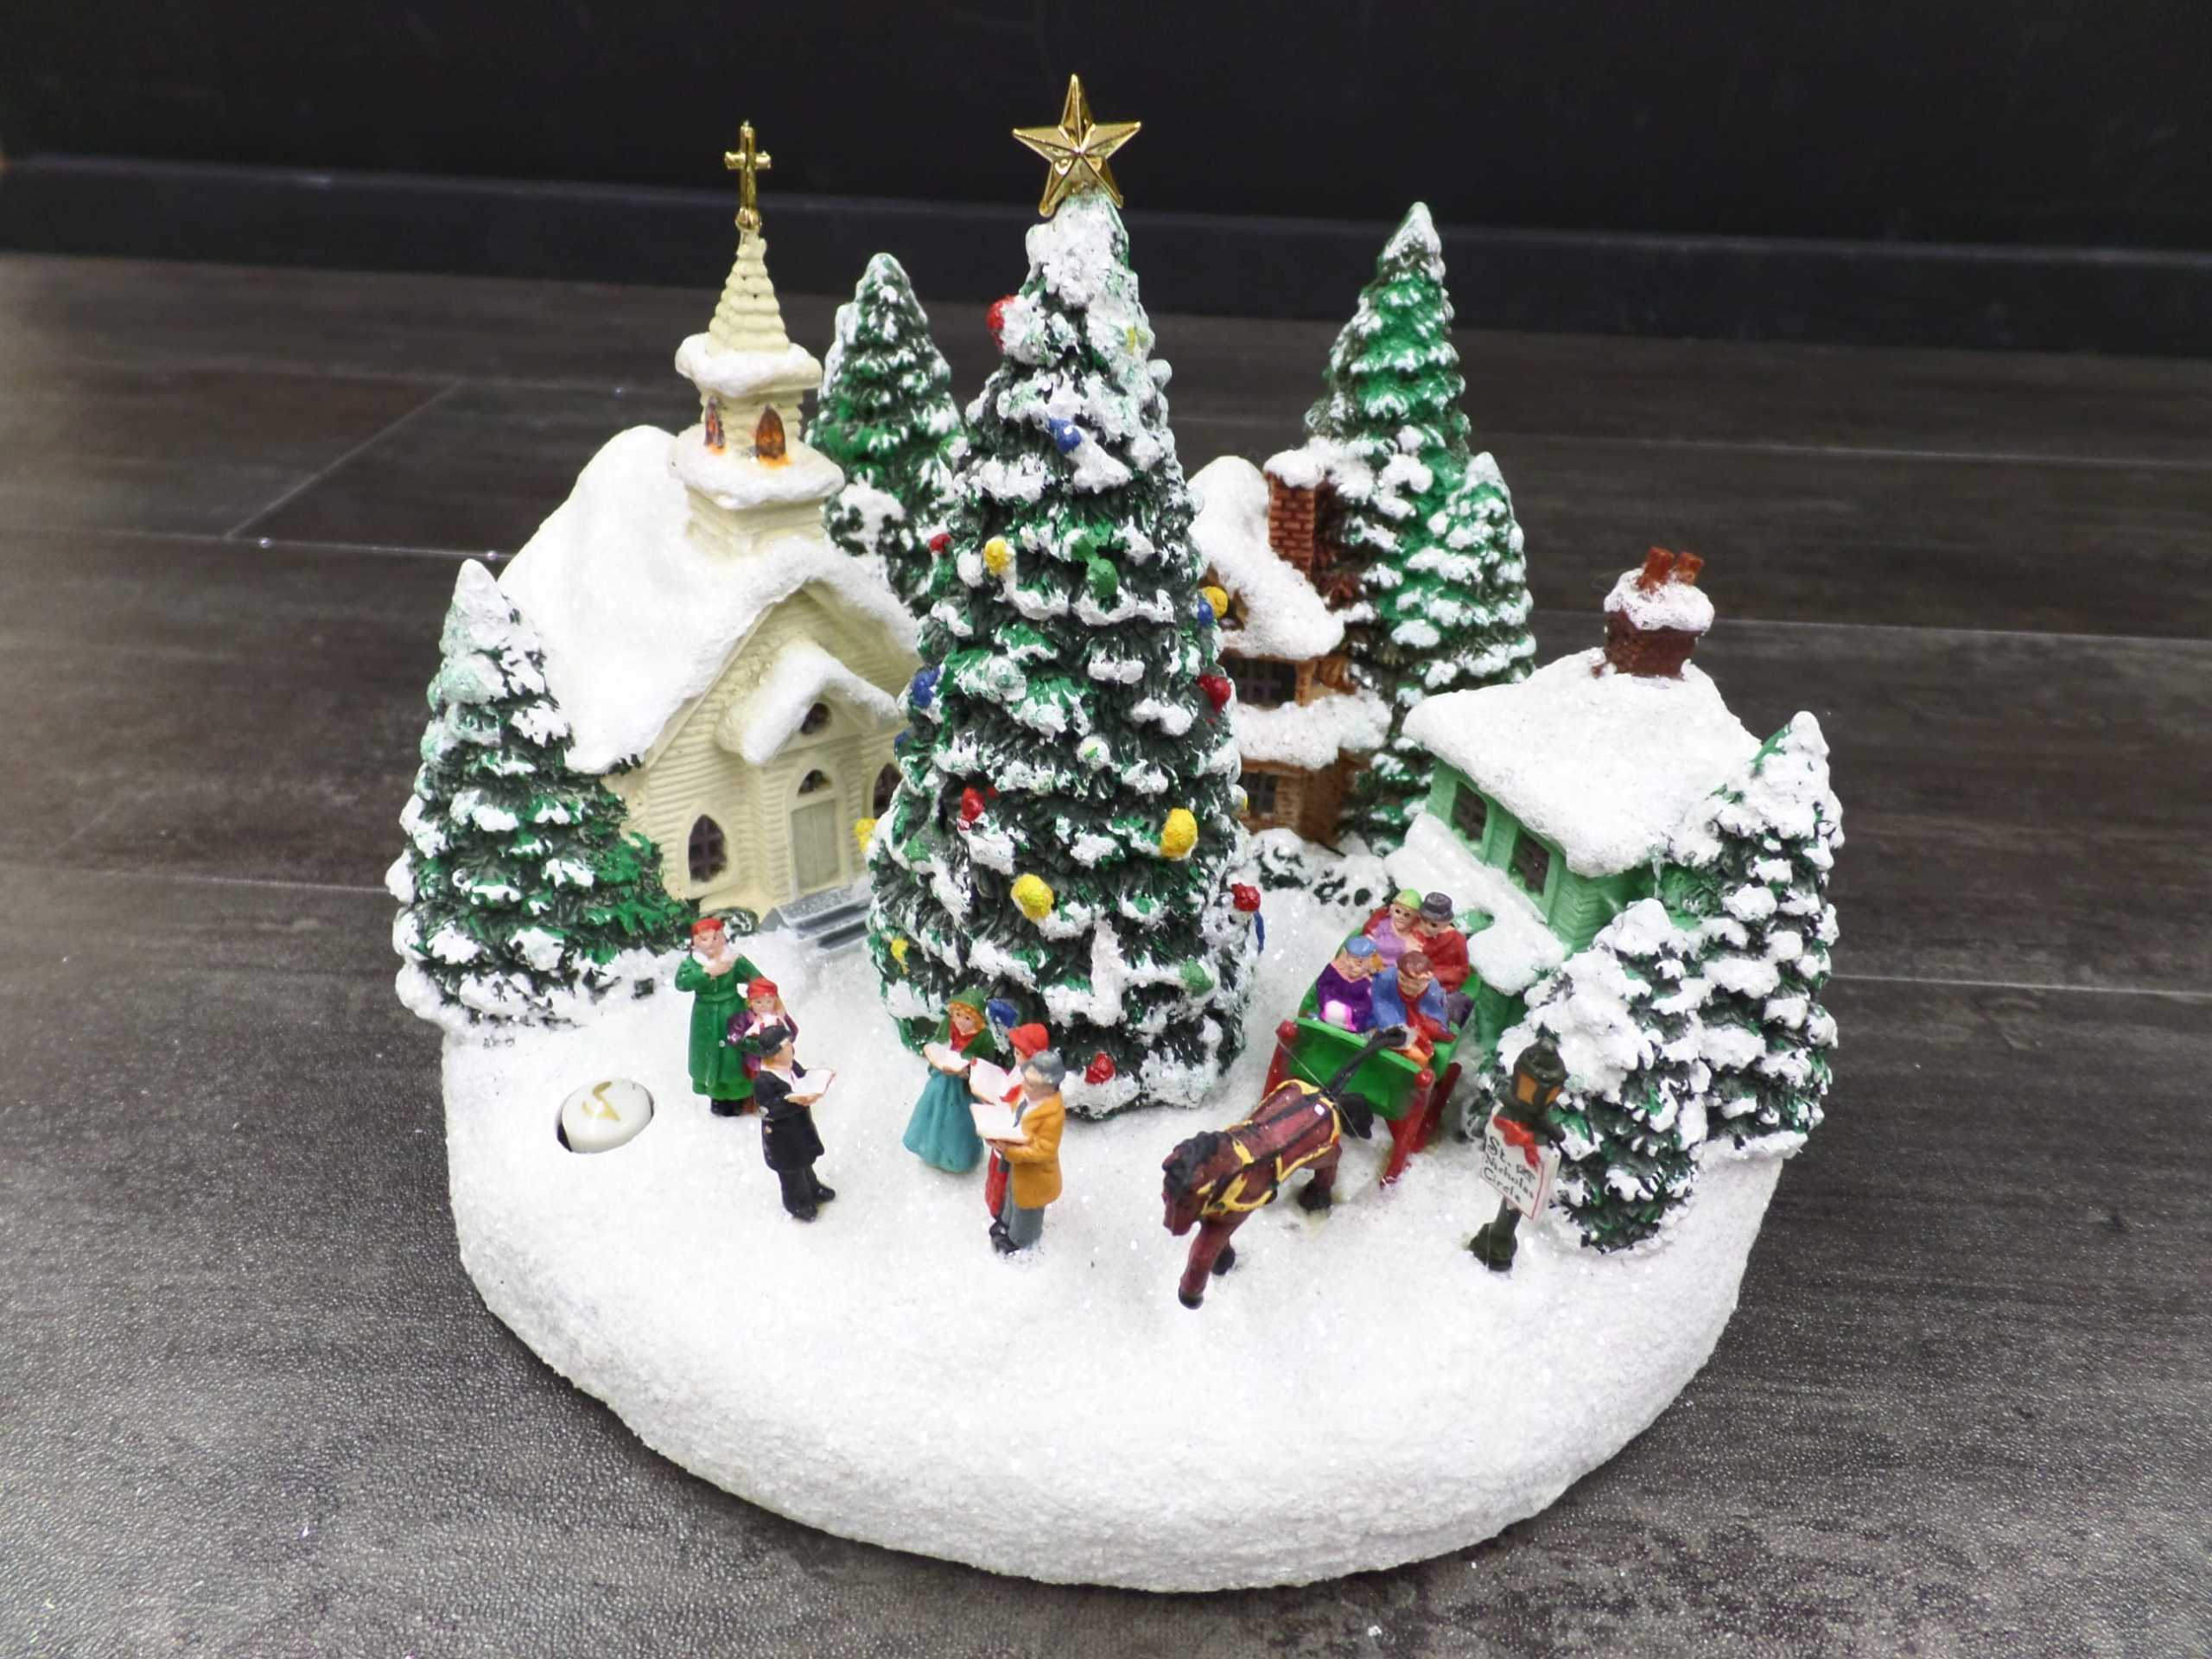 2011 THOMAS KINKADE MINI CHRISTMAS VILLAGE <br/> Donated by: WPBS SUPPORTER <br/> Valued at: $60